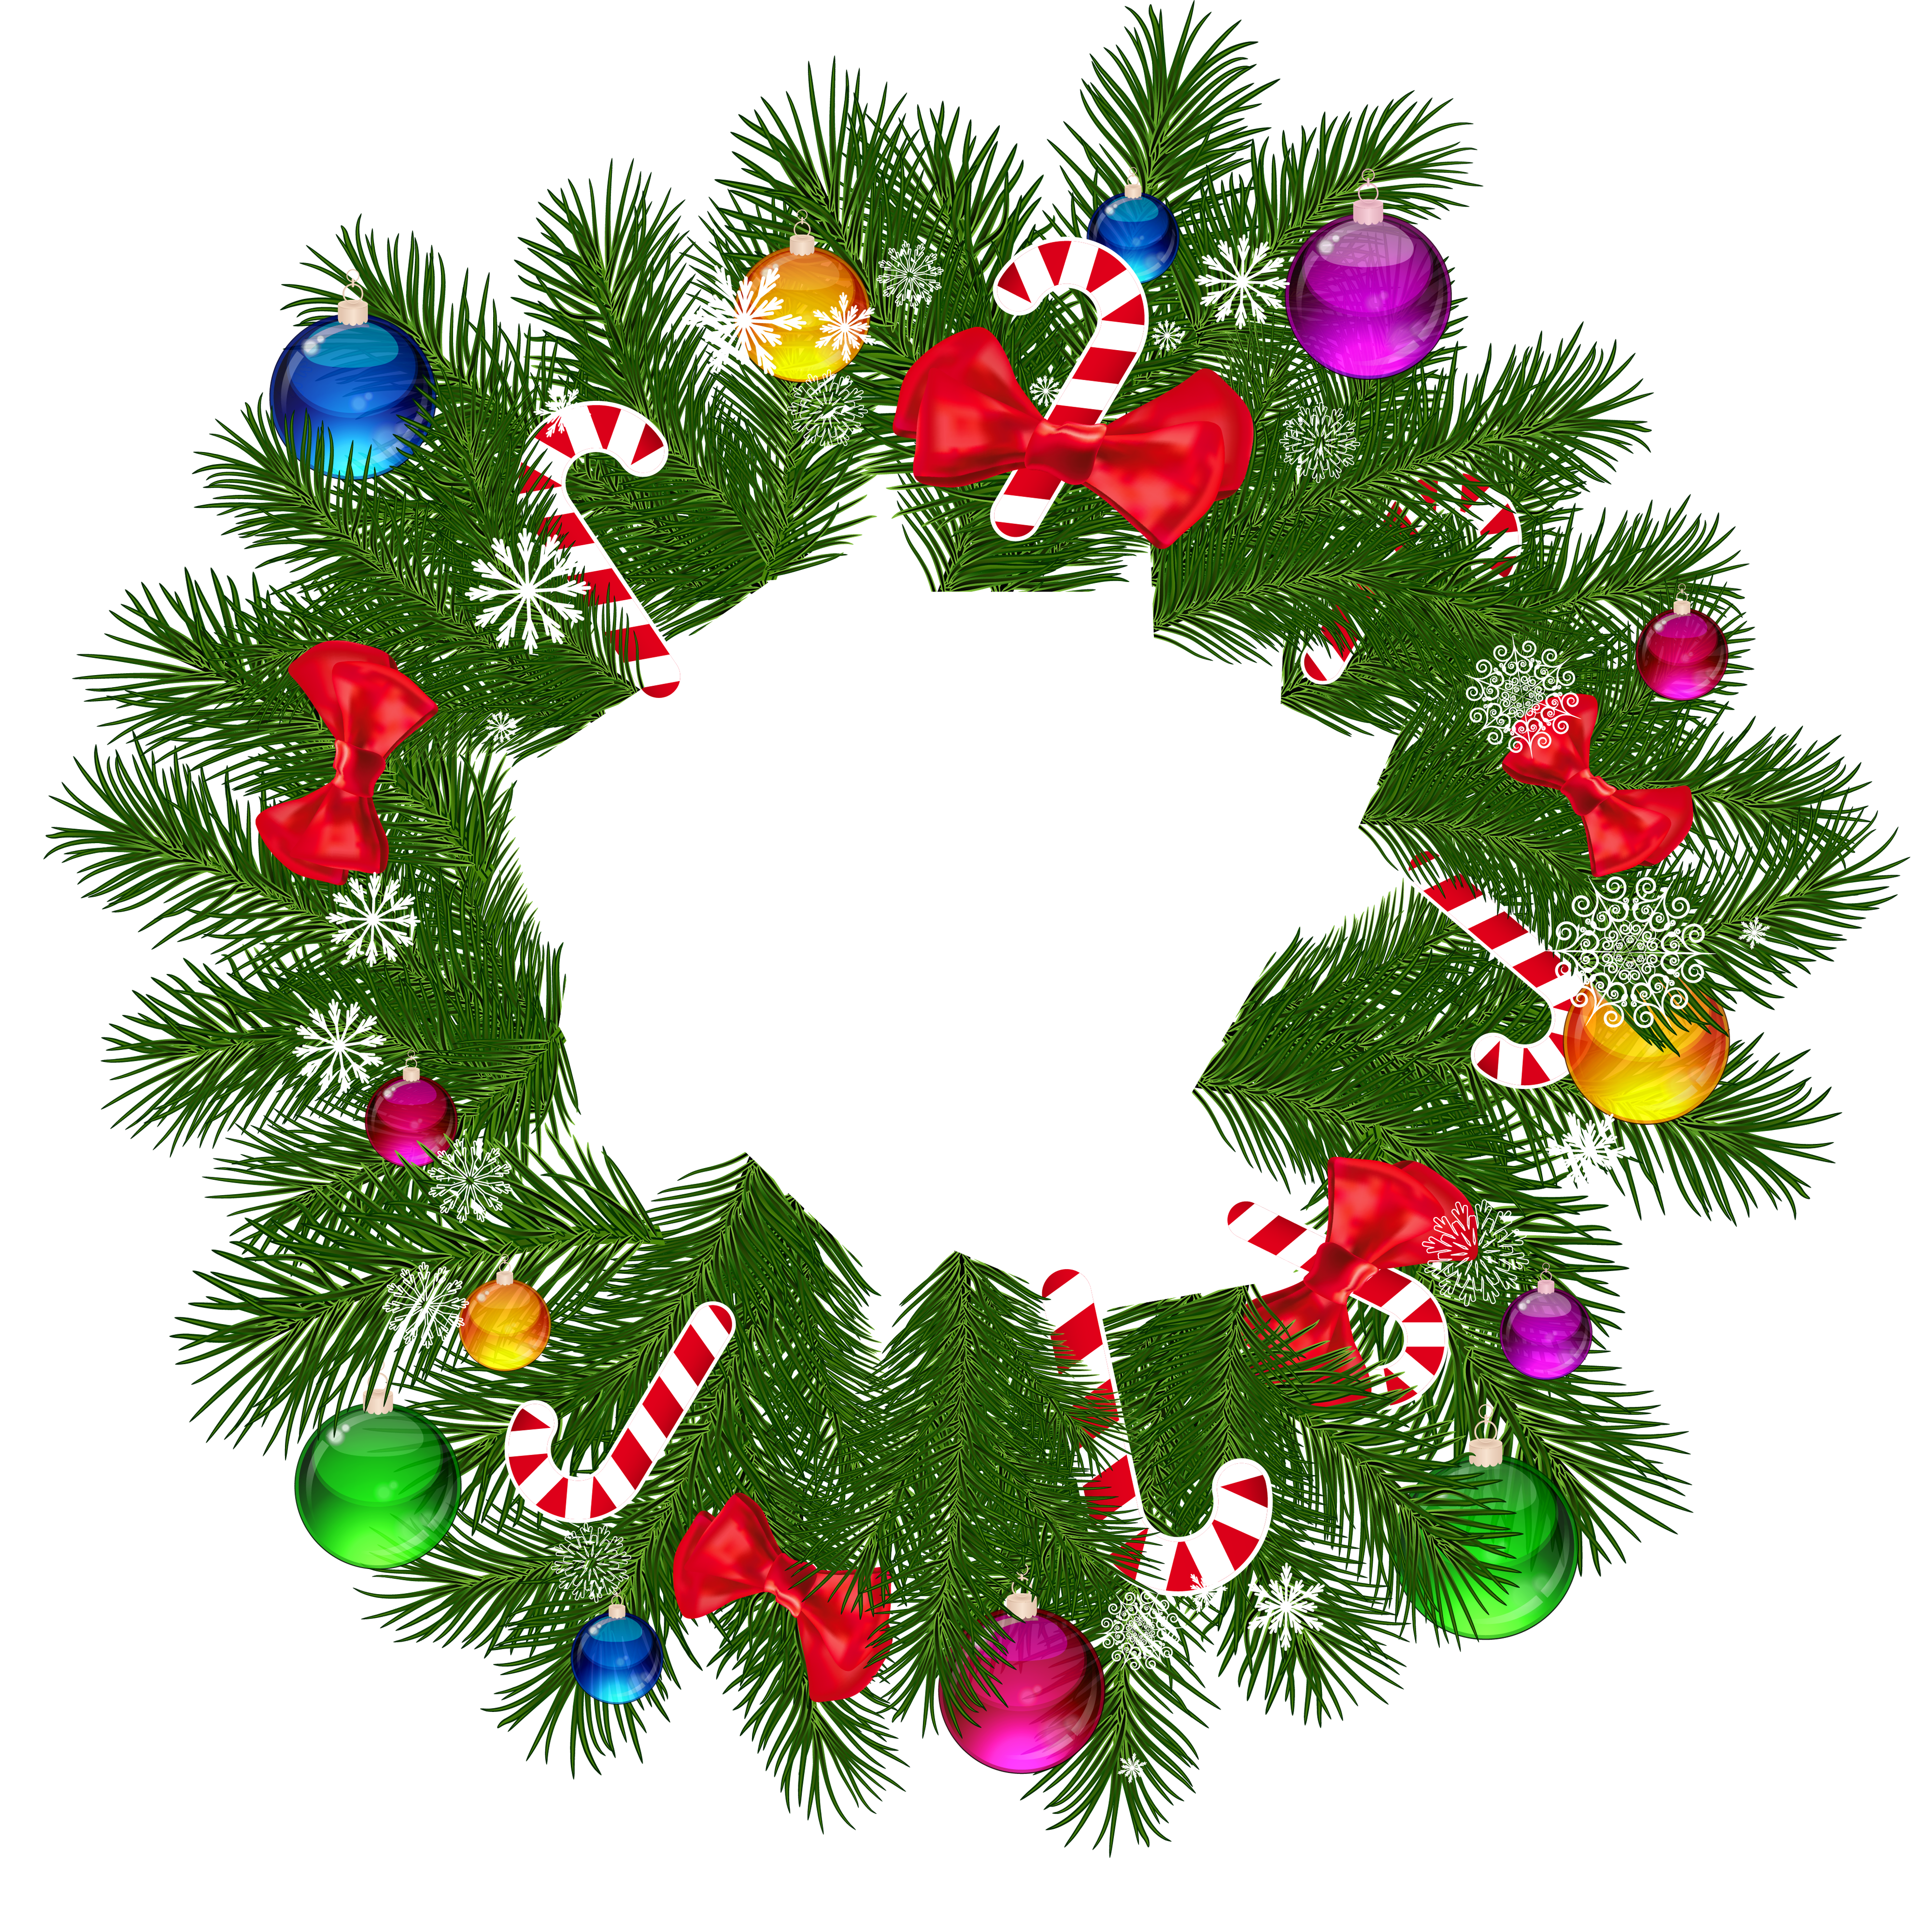 Free PNG HD Christmas Wreath Transparent HD Christmas Wreath.PNG.